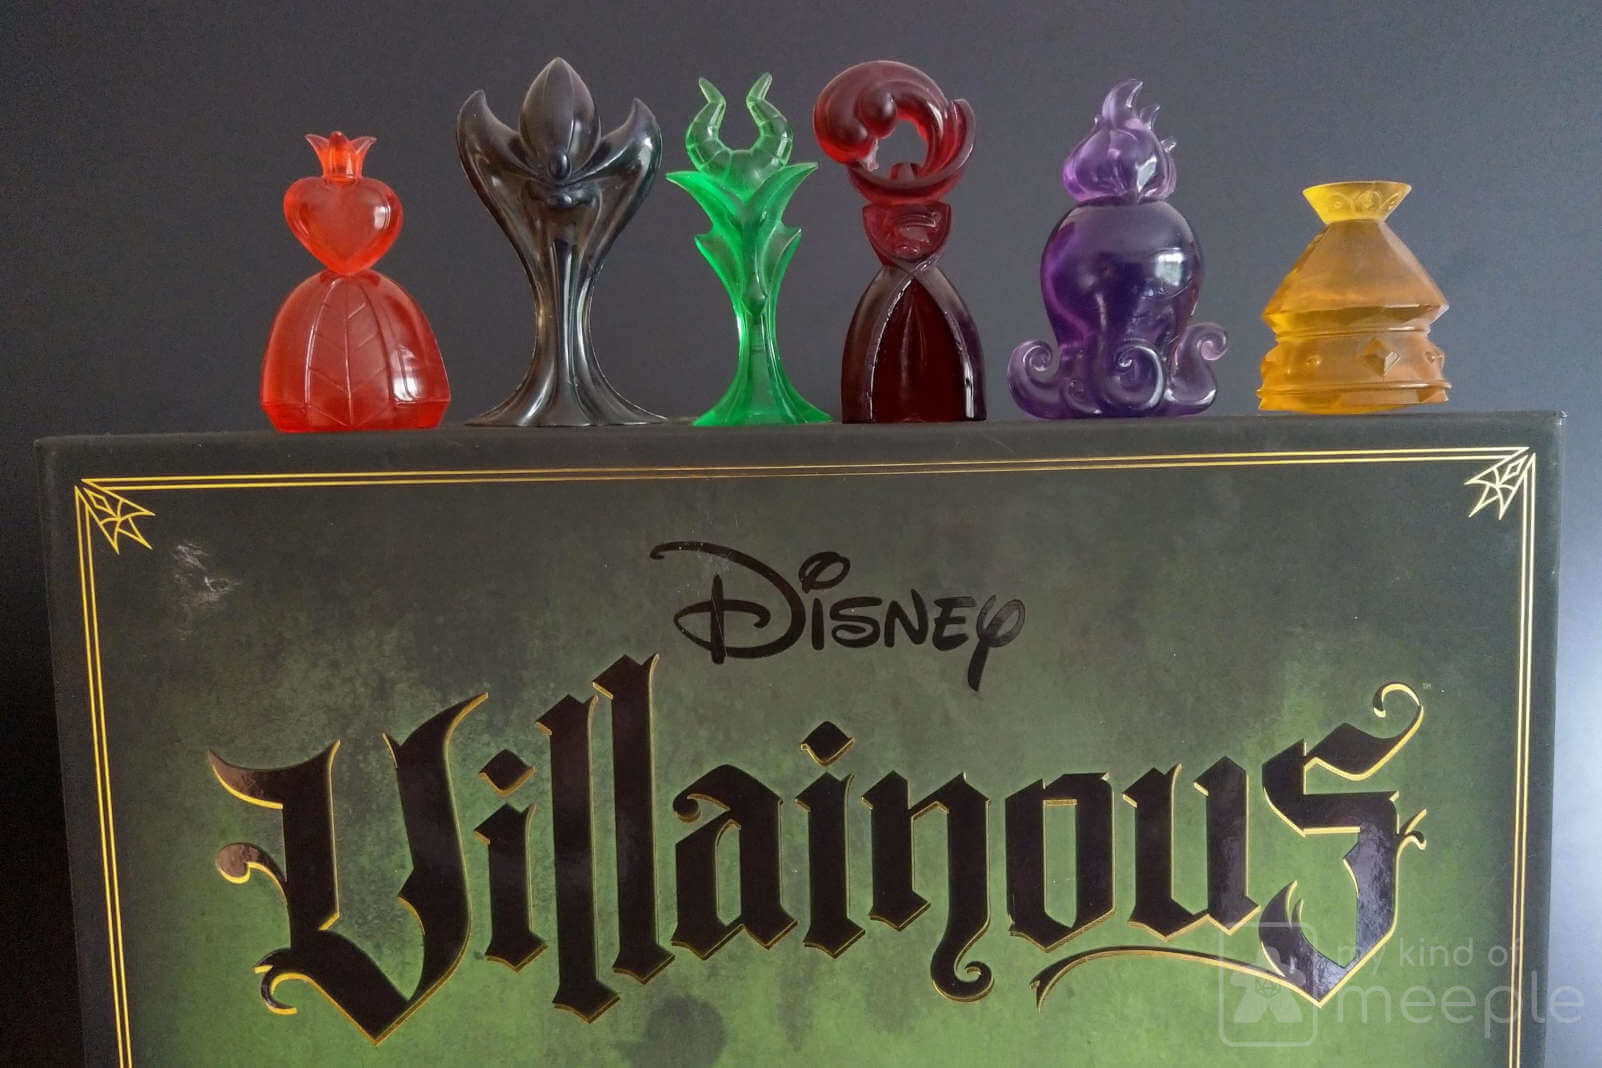 Disney Villainous base characters on box